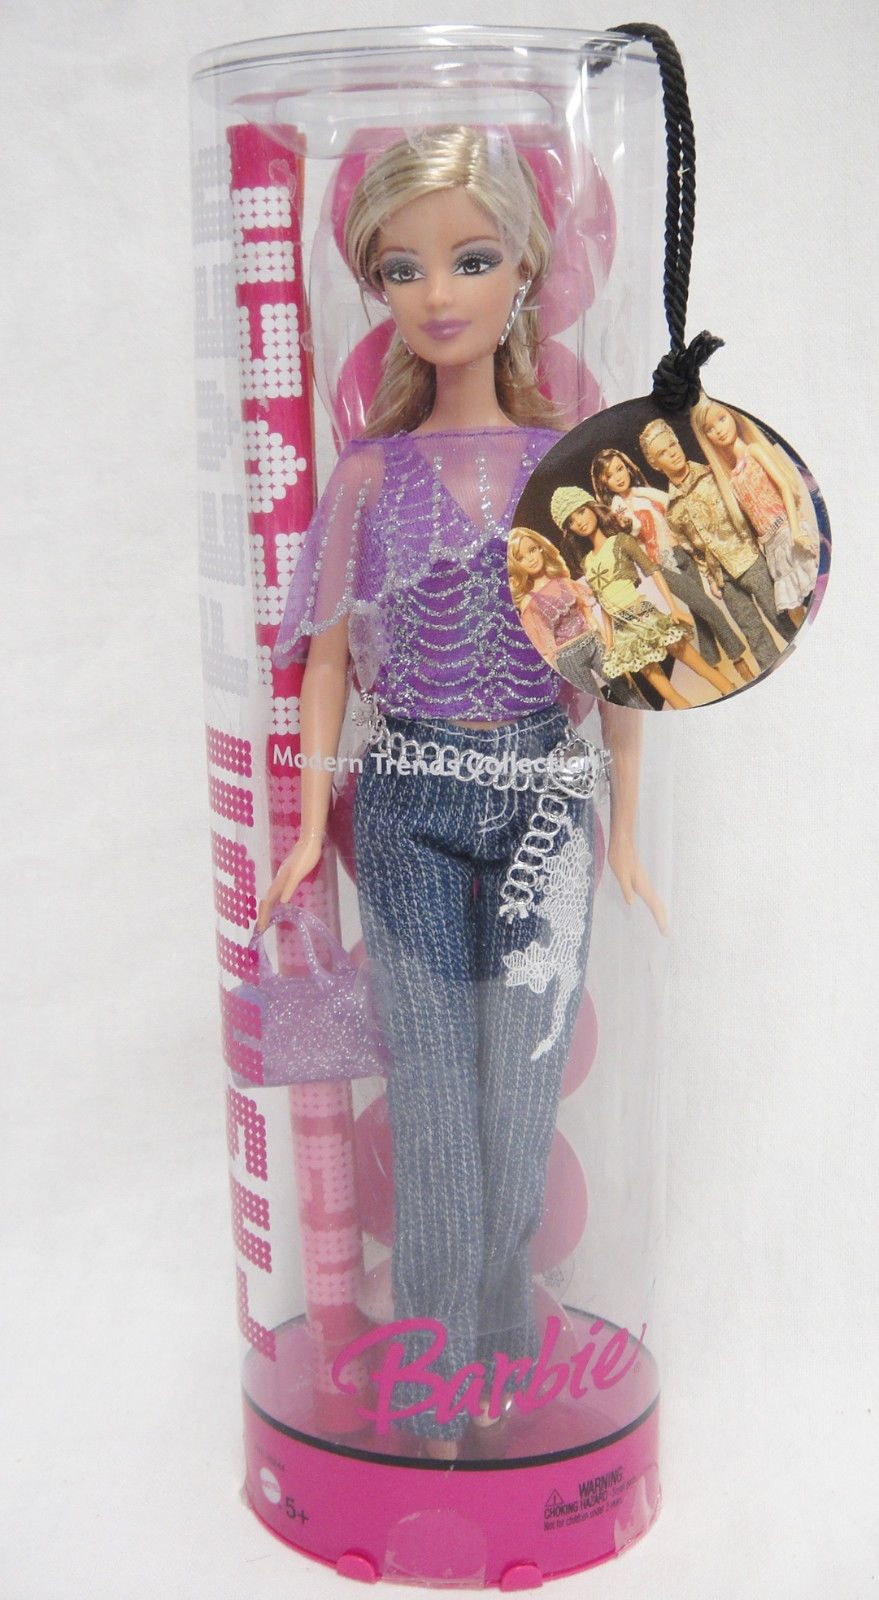 Fashion Fever Barbie Purple Top Pin Striped Jeans Modern Trends Collection | eBay